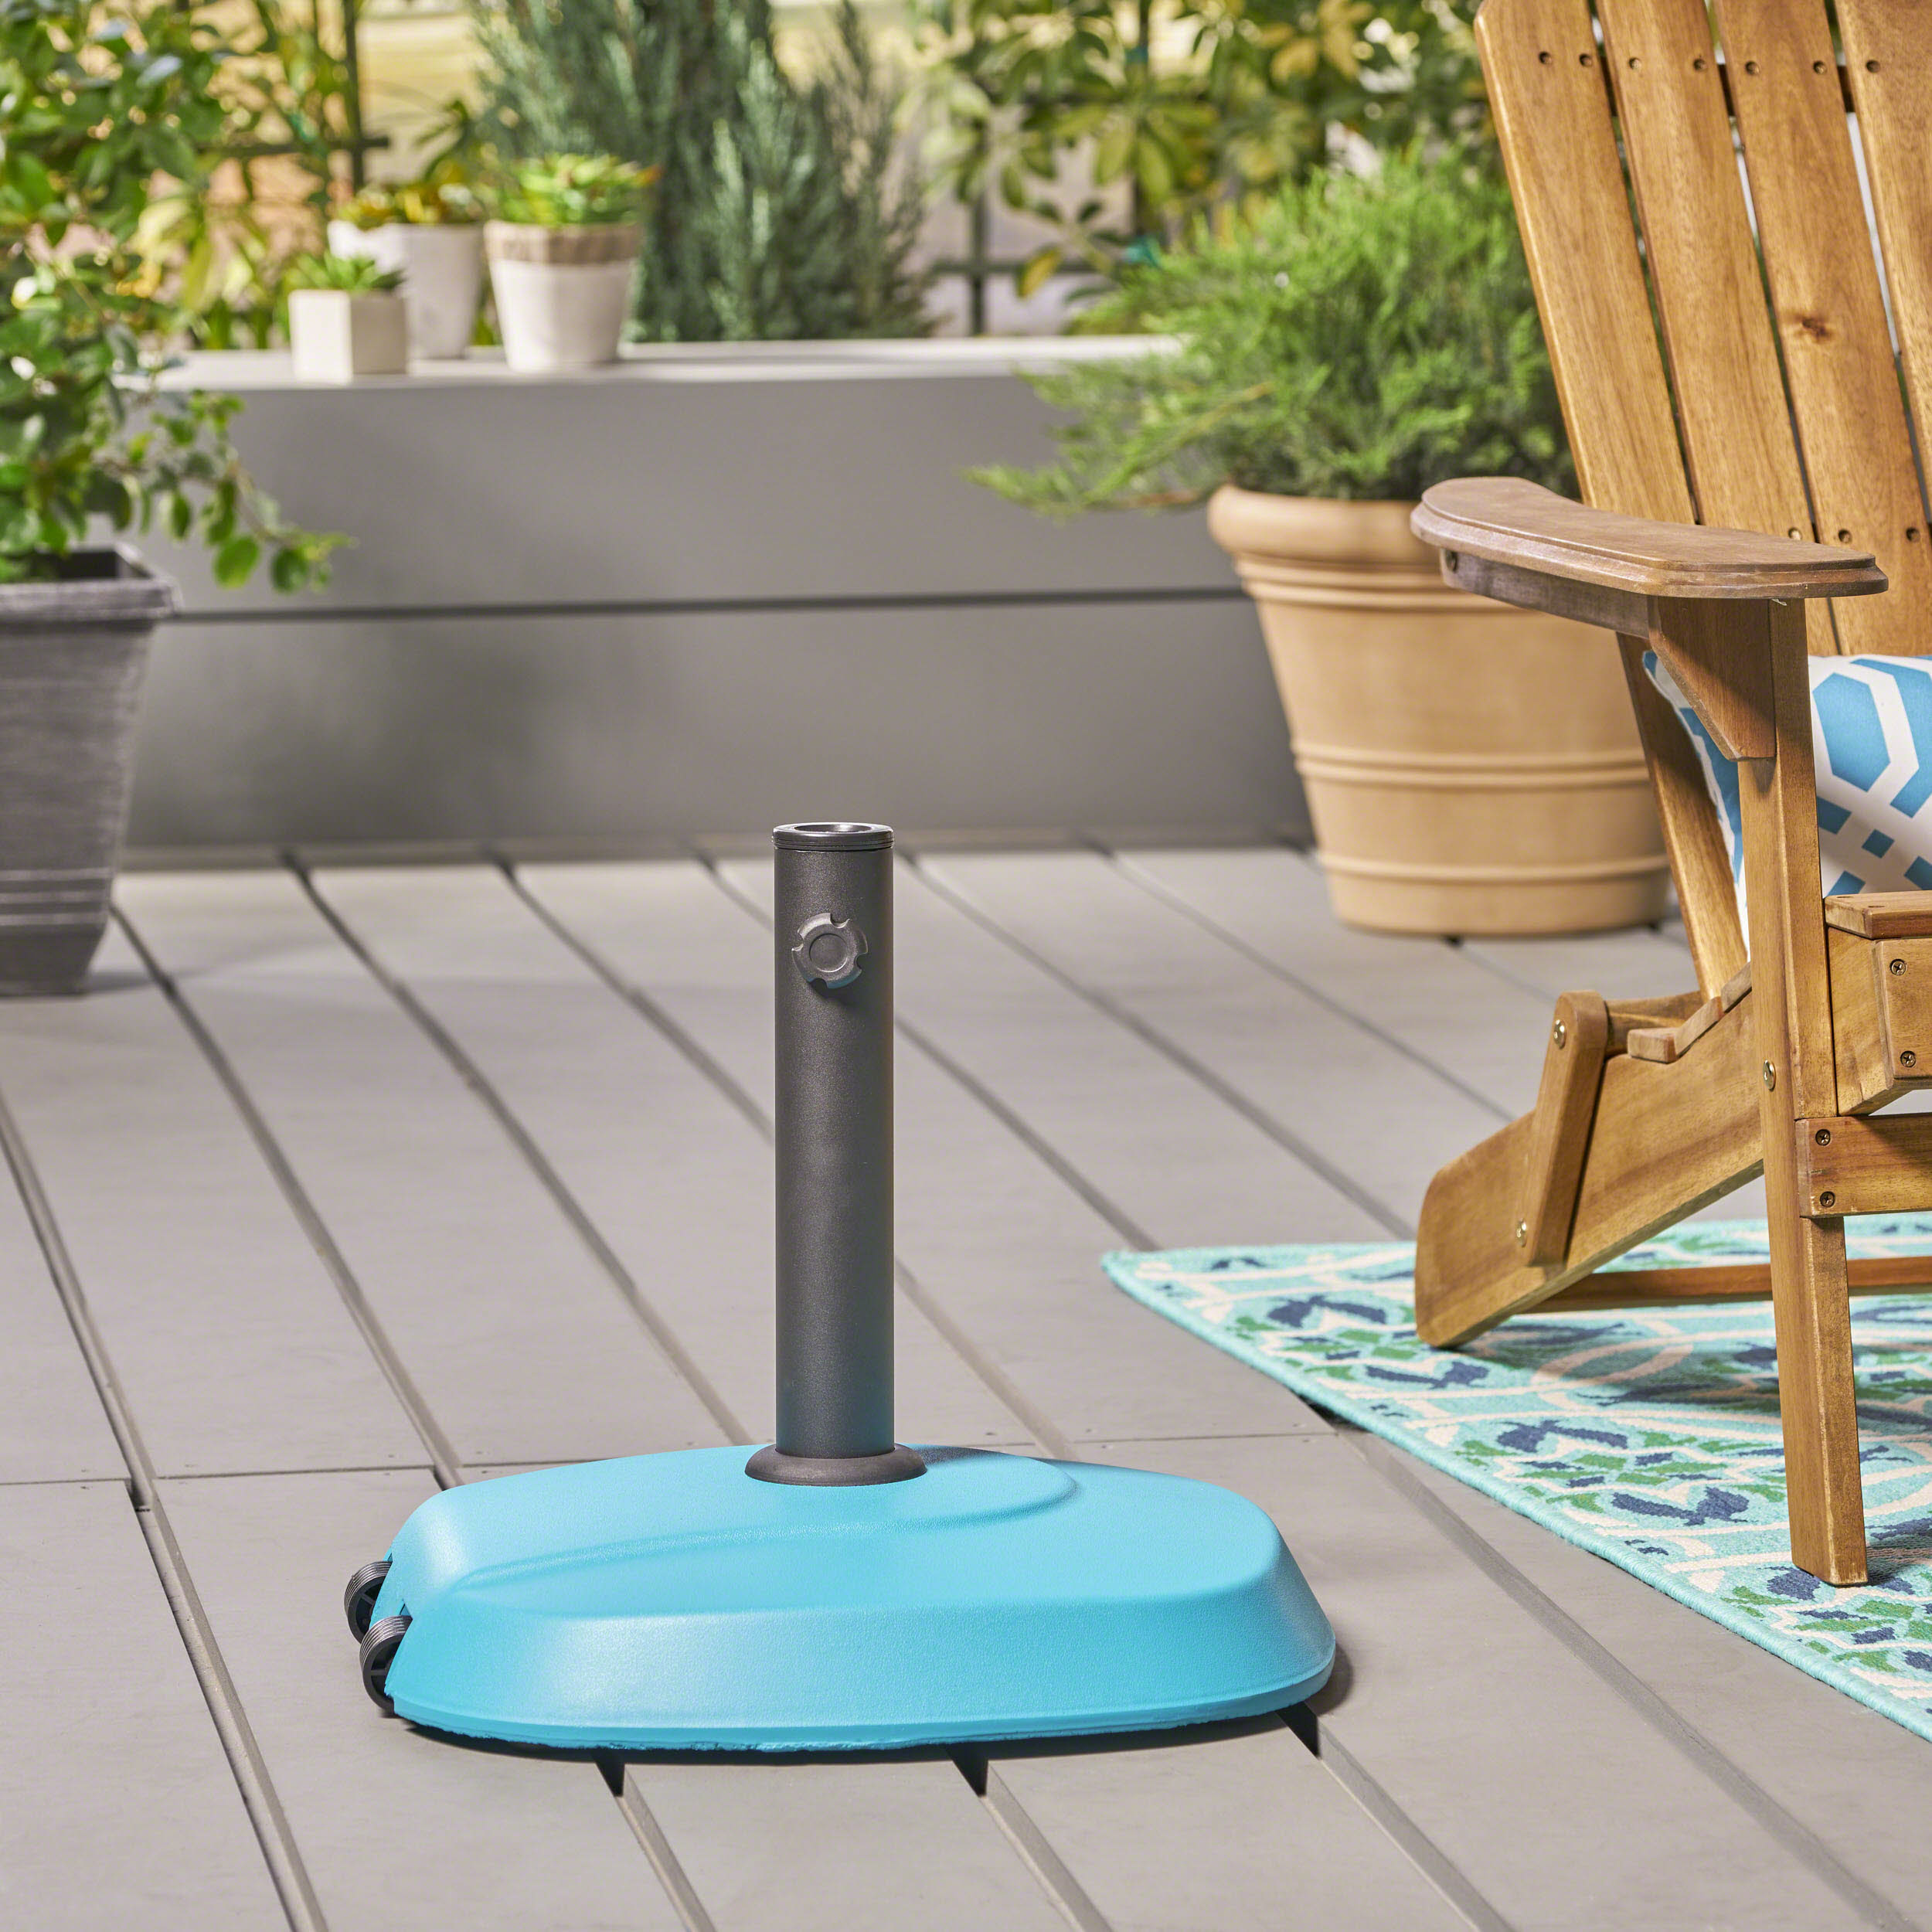 Outdoor 59.5lb Concrete Circular Umbrella Base with Aluminum Collar, Teal